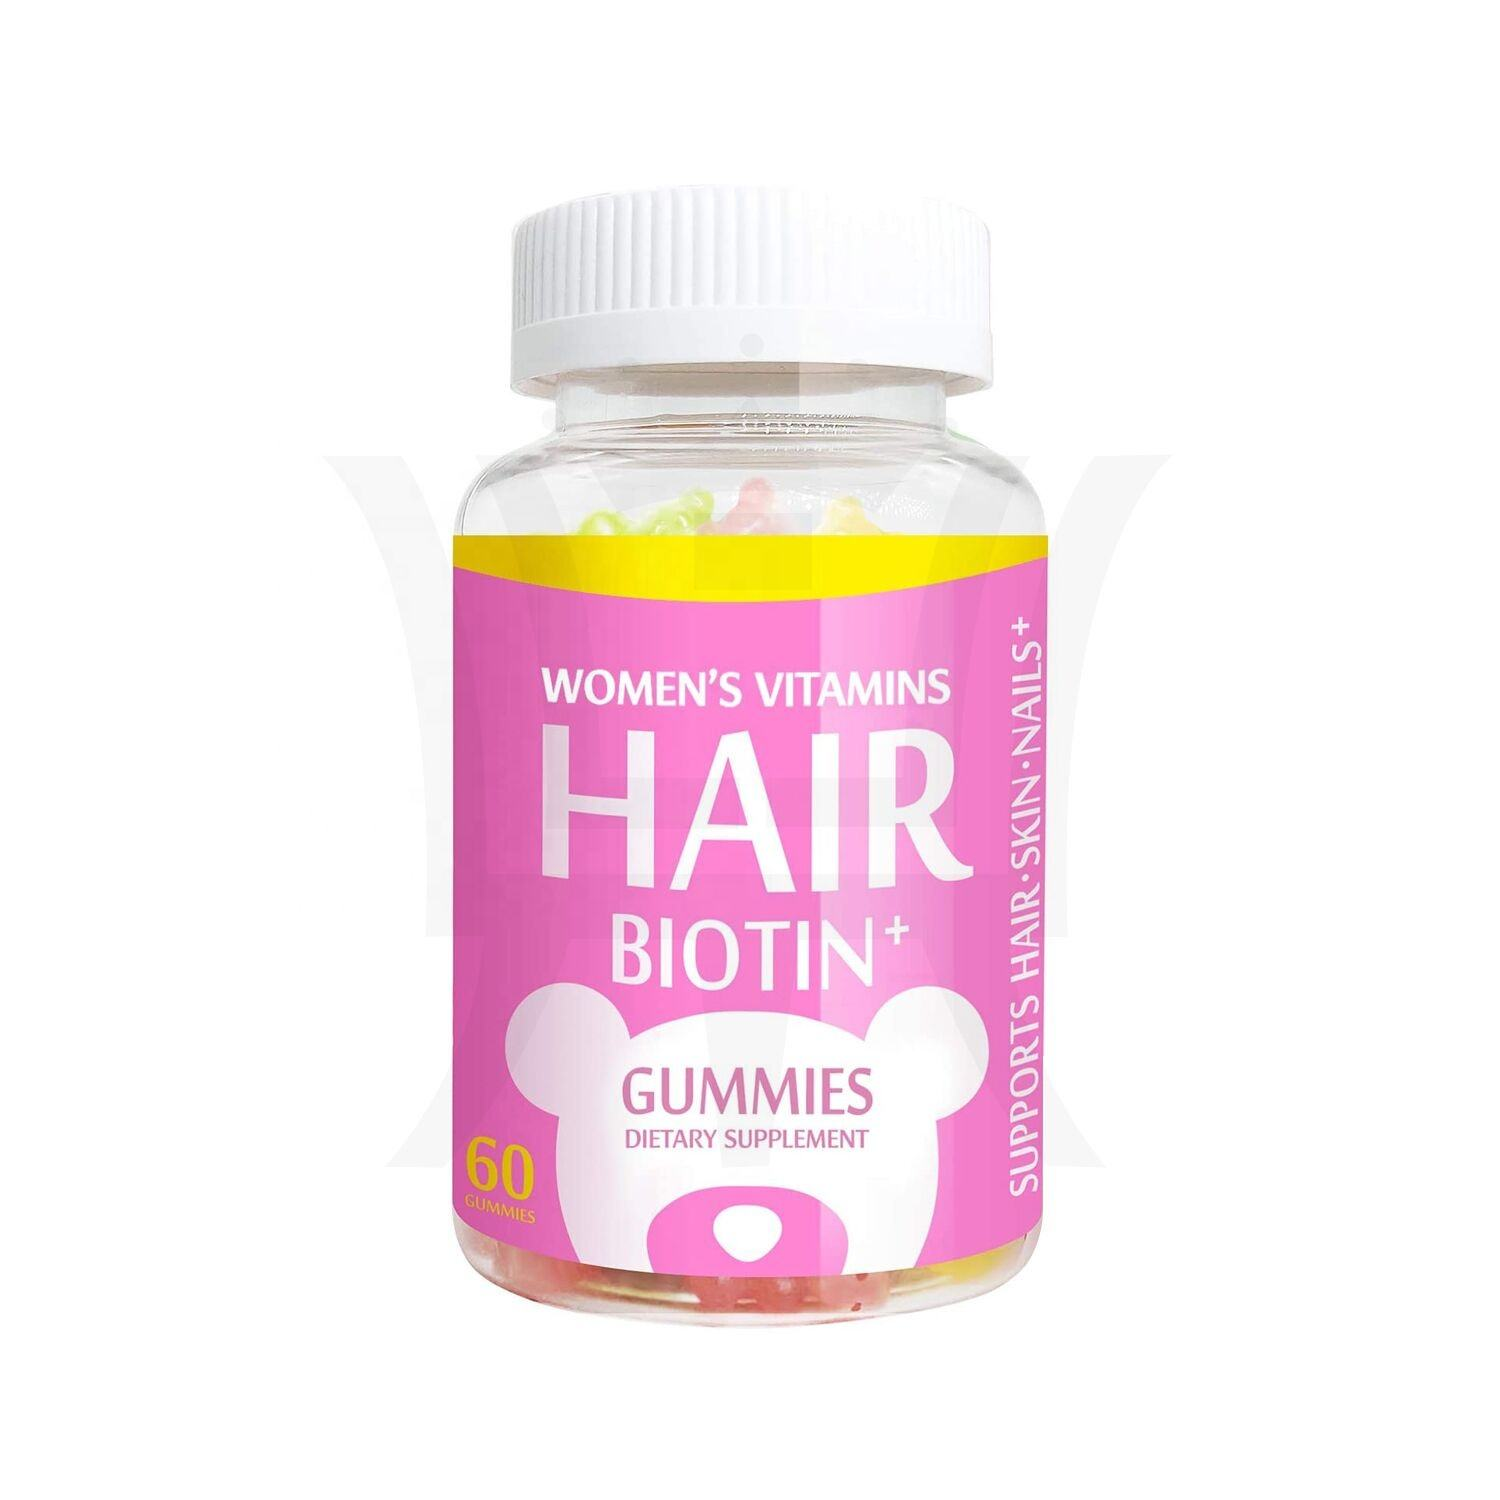 VegePower Cheveux <span class=keywords><strong>Vitamines</strong></span> Gummies Biotine <span class=keywords><strong>10</strong></span>,000 µg de Vitamine C & E pour Cheveux Sains Naturel Fruits Faveurs